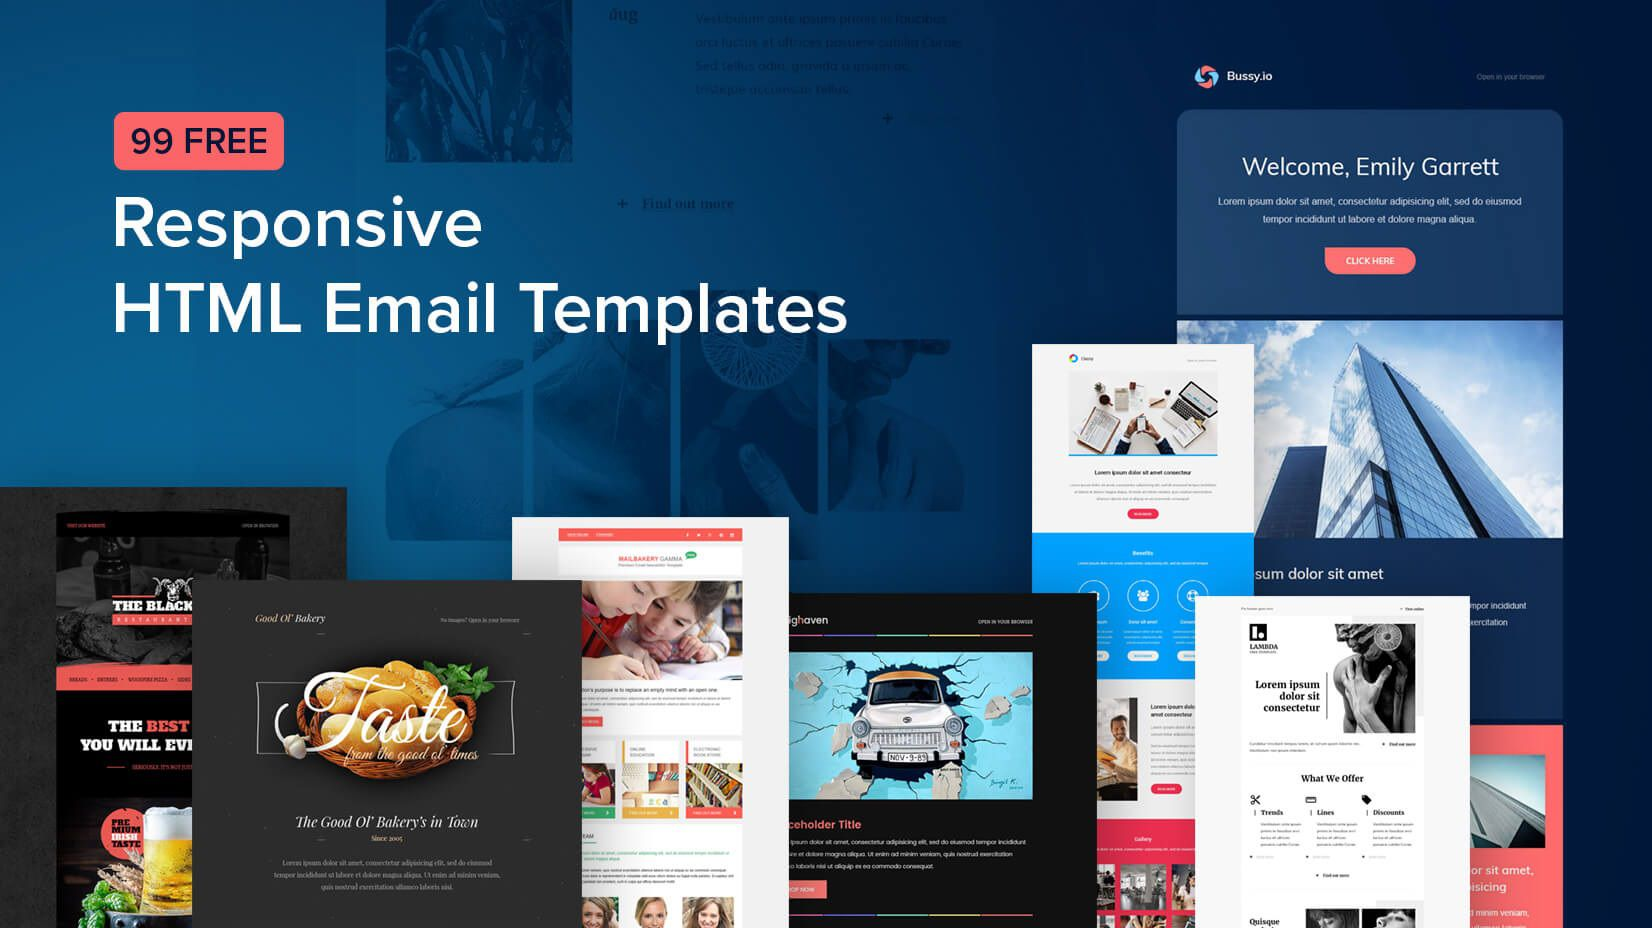 009 Awesome Free Responsive Html Email Template Download Highest Clarity  Simple App-responsive-notification-email-html-templateFull